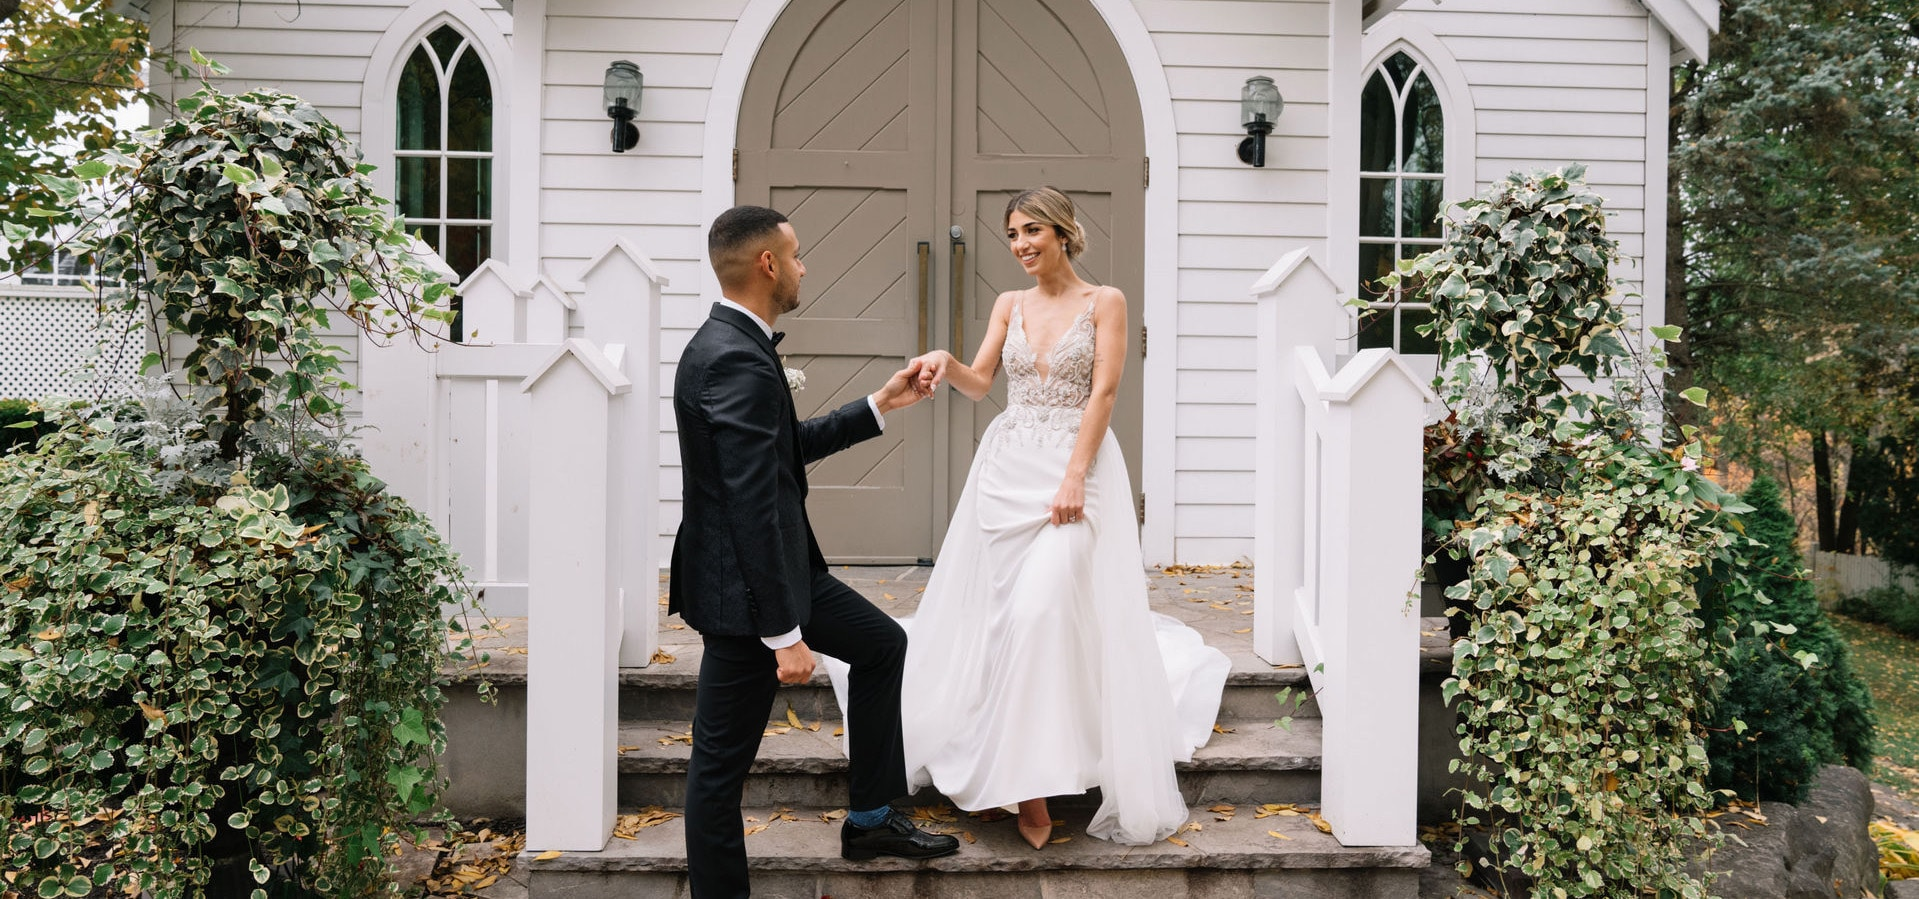 Hero image for Michelle and Jorge's Super Sweet Fall Micro-Wedding